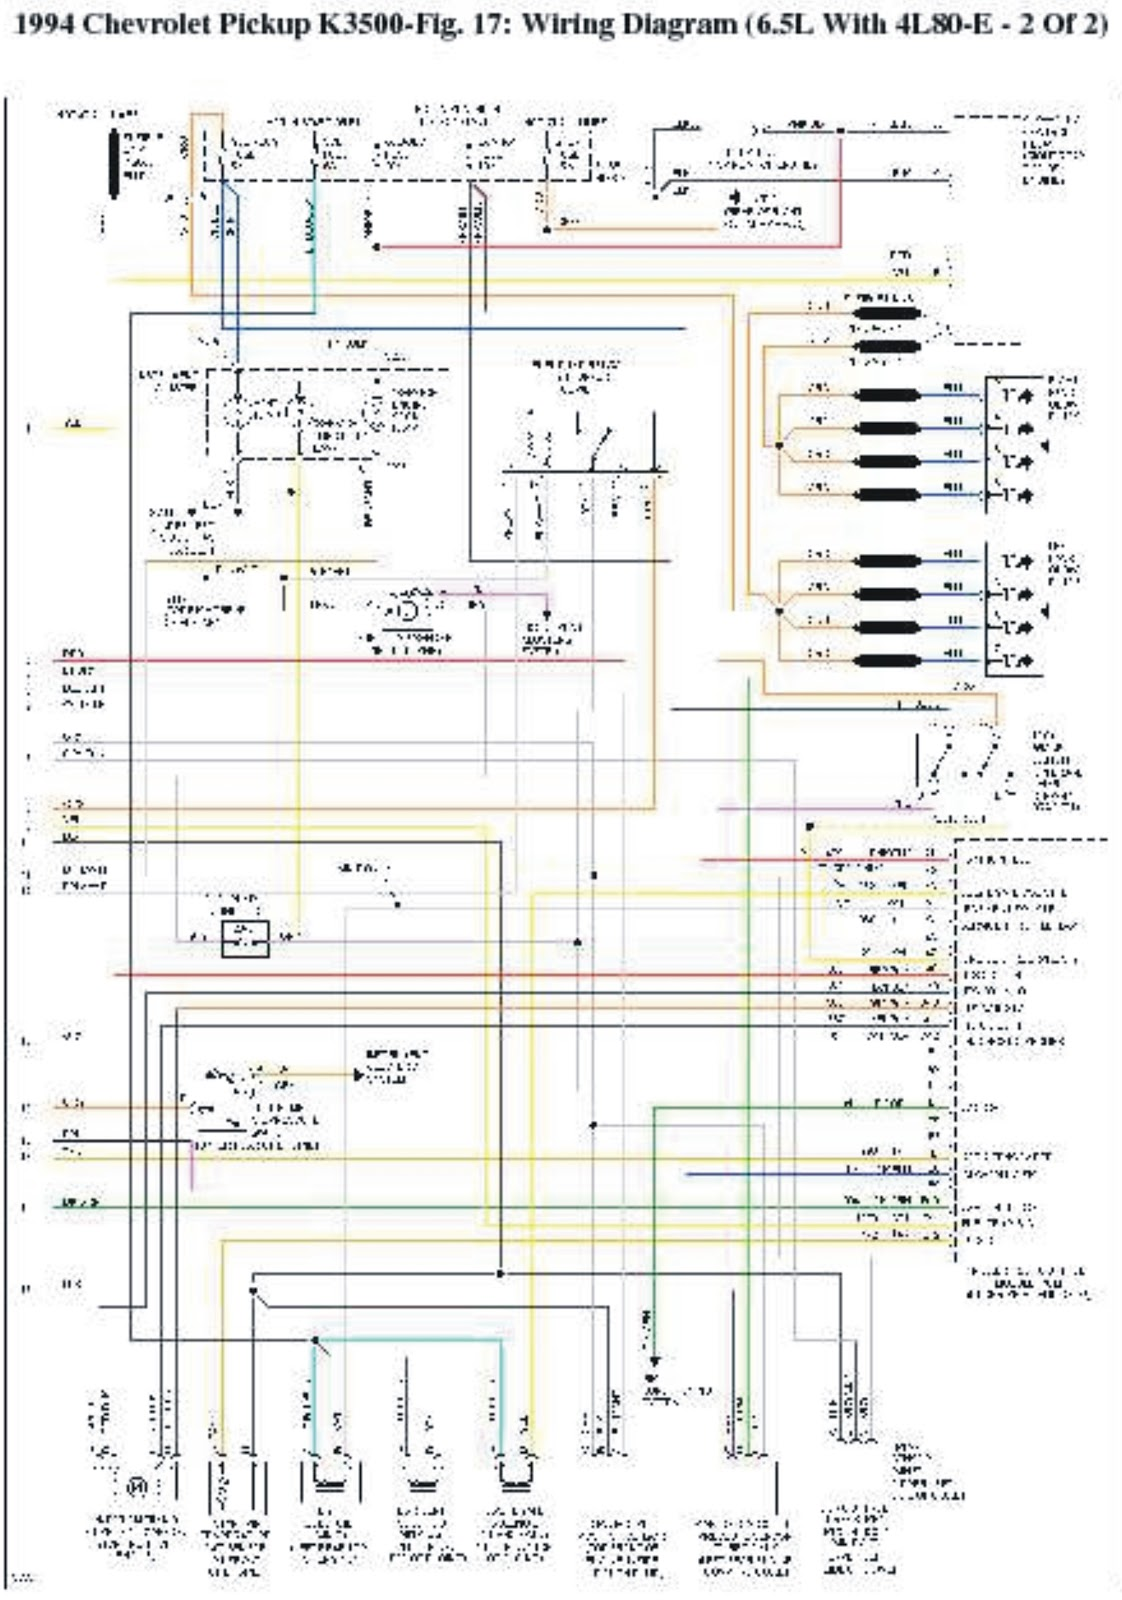 1994 chevy truck wiring diagram as well pictures 1994 chevy truck wiring diagram